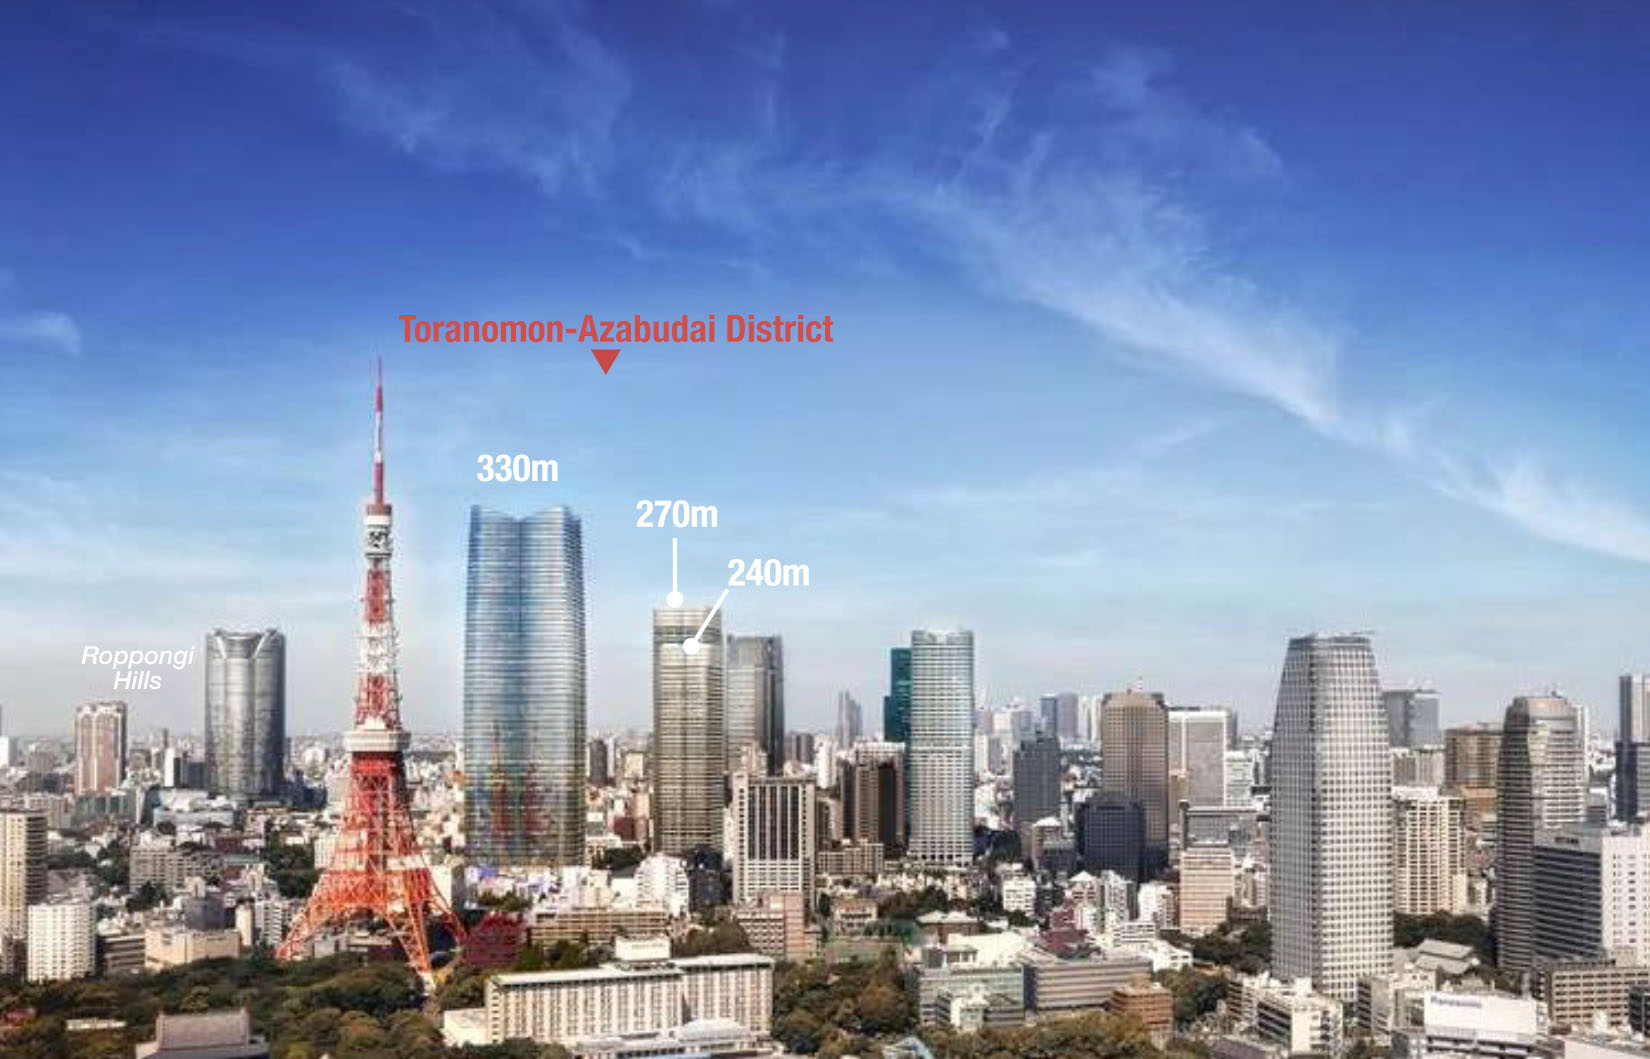 65-story building with 1,000 sqm penthouse apartment planned for Toranomon